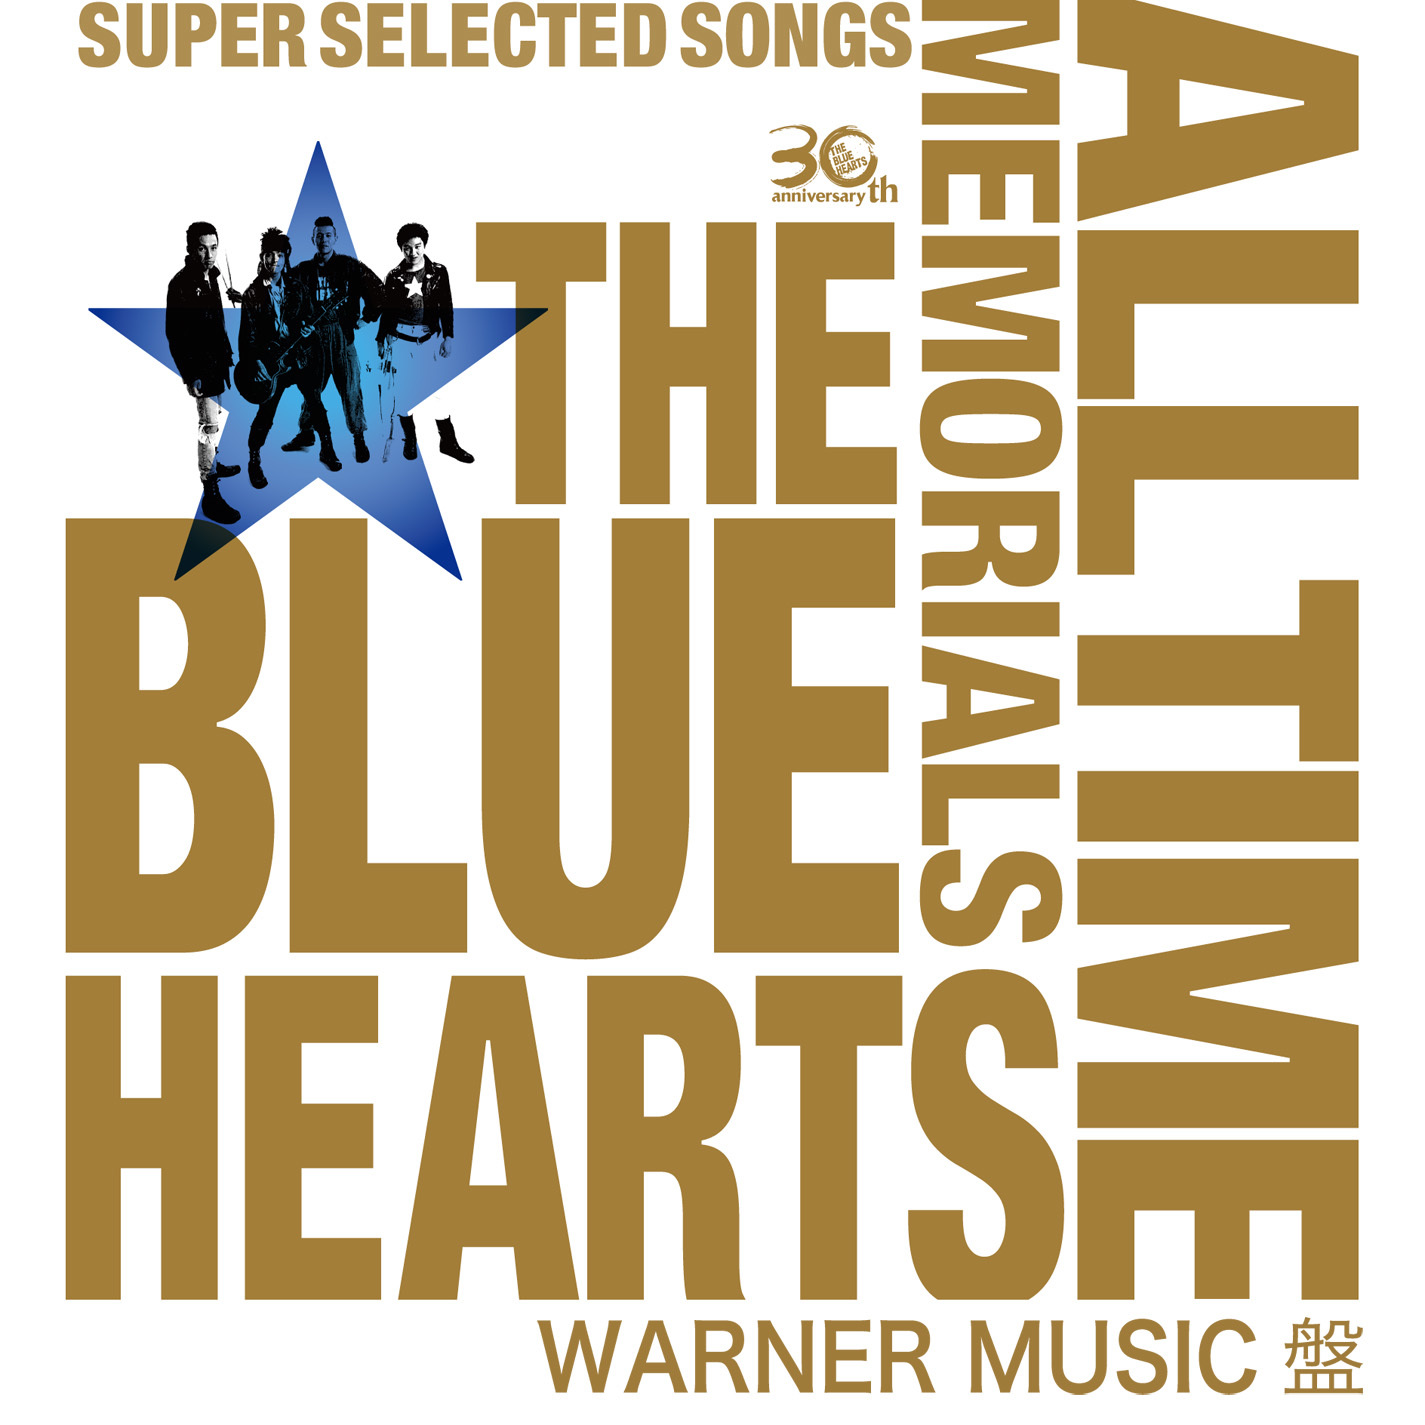 『THE BLUE HEARTS 30th ANNIVERSARY ALL TIME MEMORIALS 〜SUPER SELECTED SONGS〜 WARNER MUSIC盤』